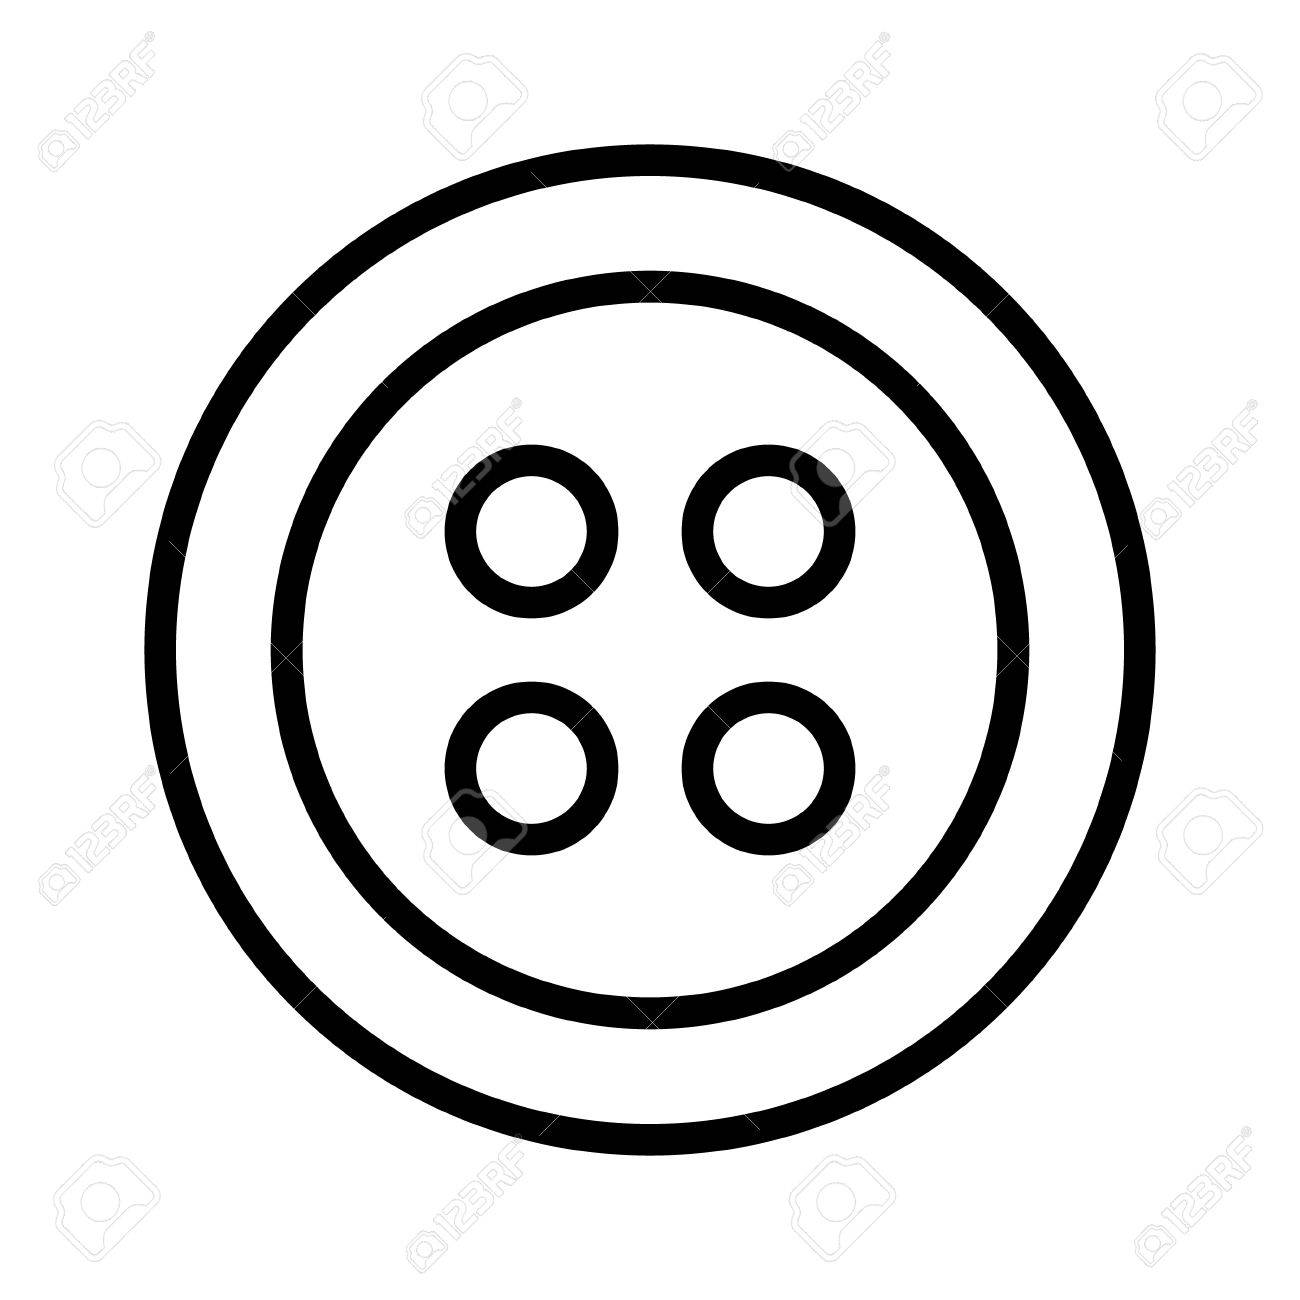 hight resolution of clothing for fashion fastener button line art icon for apps and websites stock vector 58945120